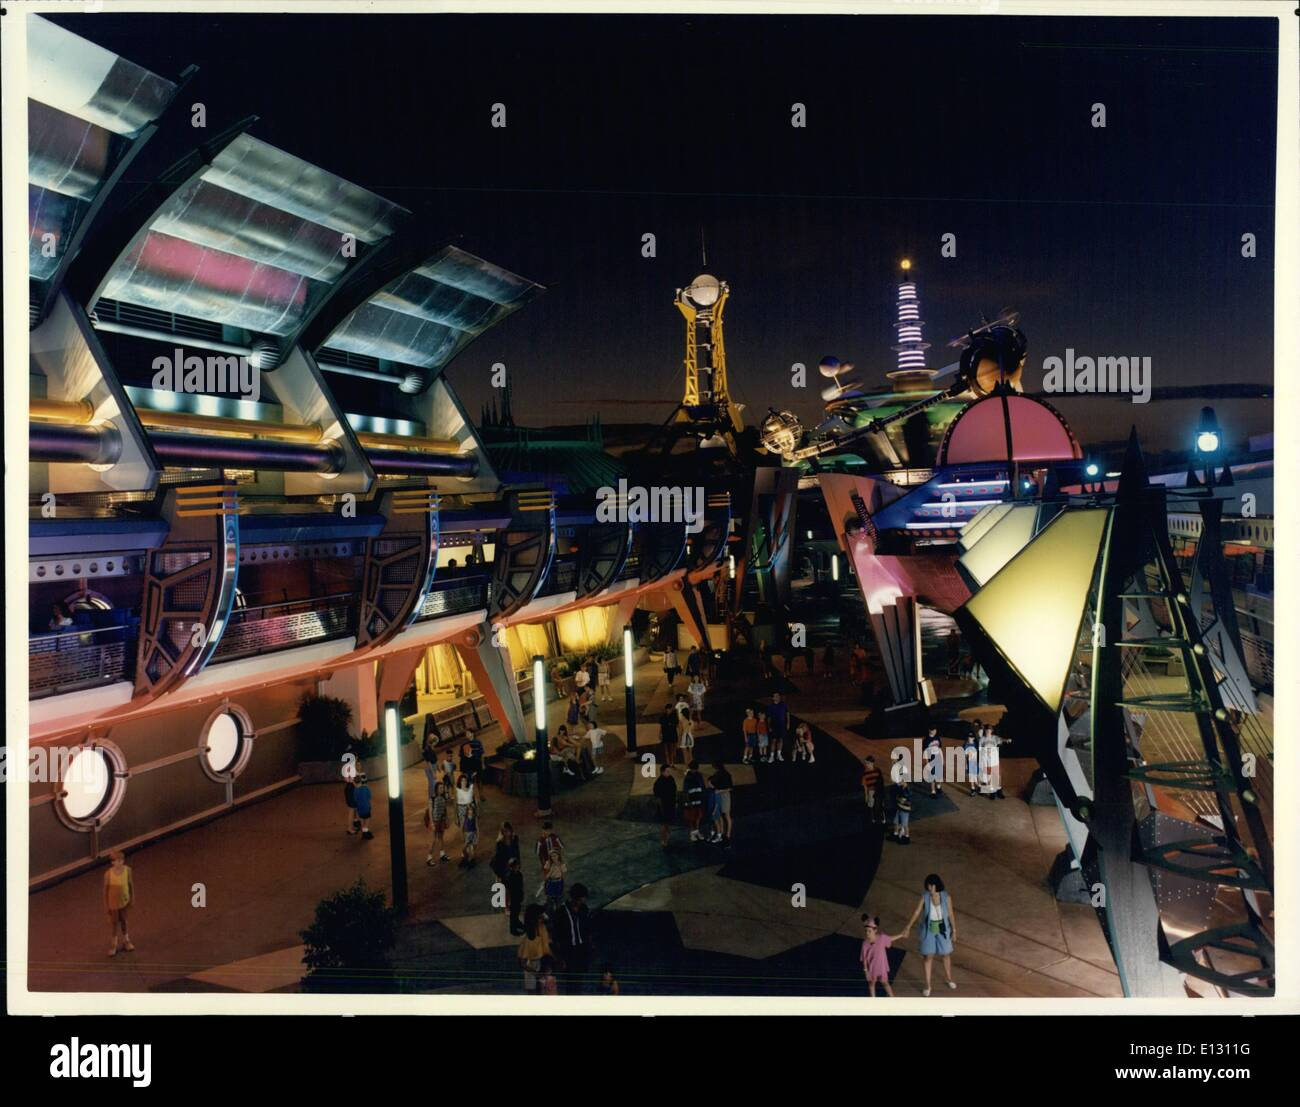 Feb. 26, 2012 - Tomorrowland To Become Fantasy Future City The future that never was is just around the corner in Stock Photo